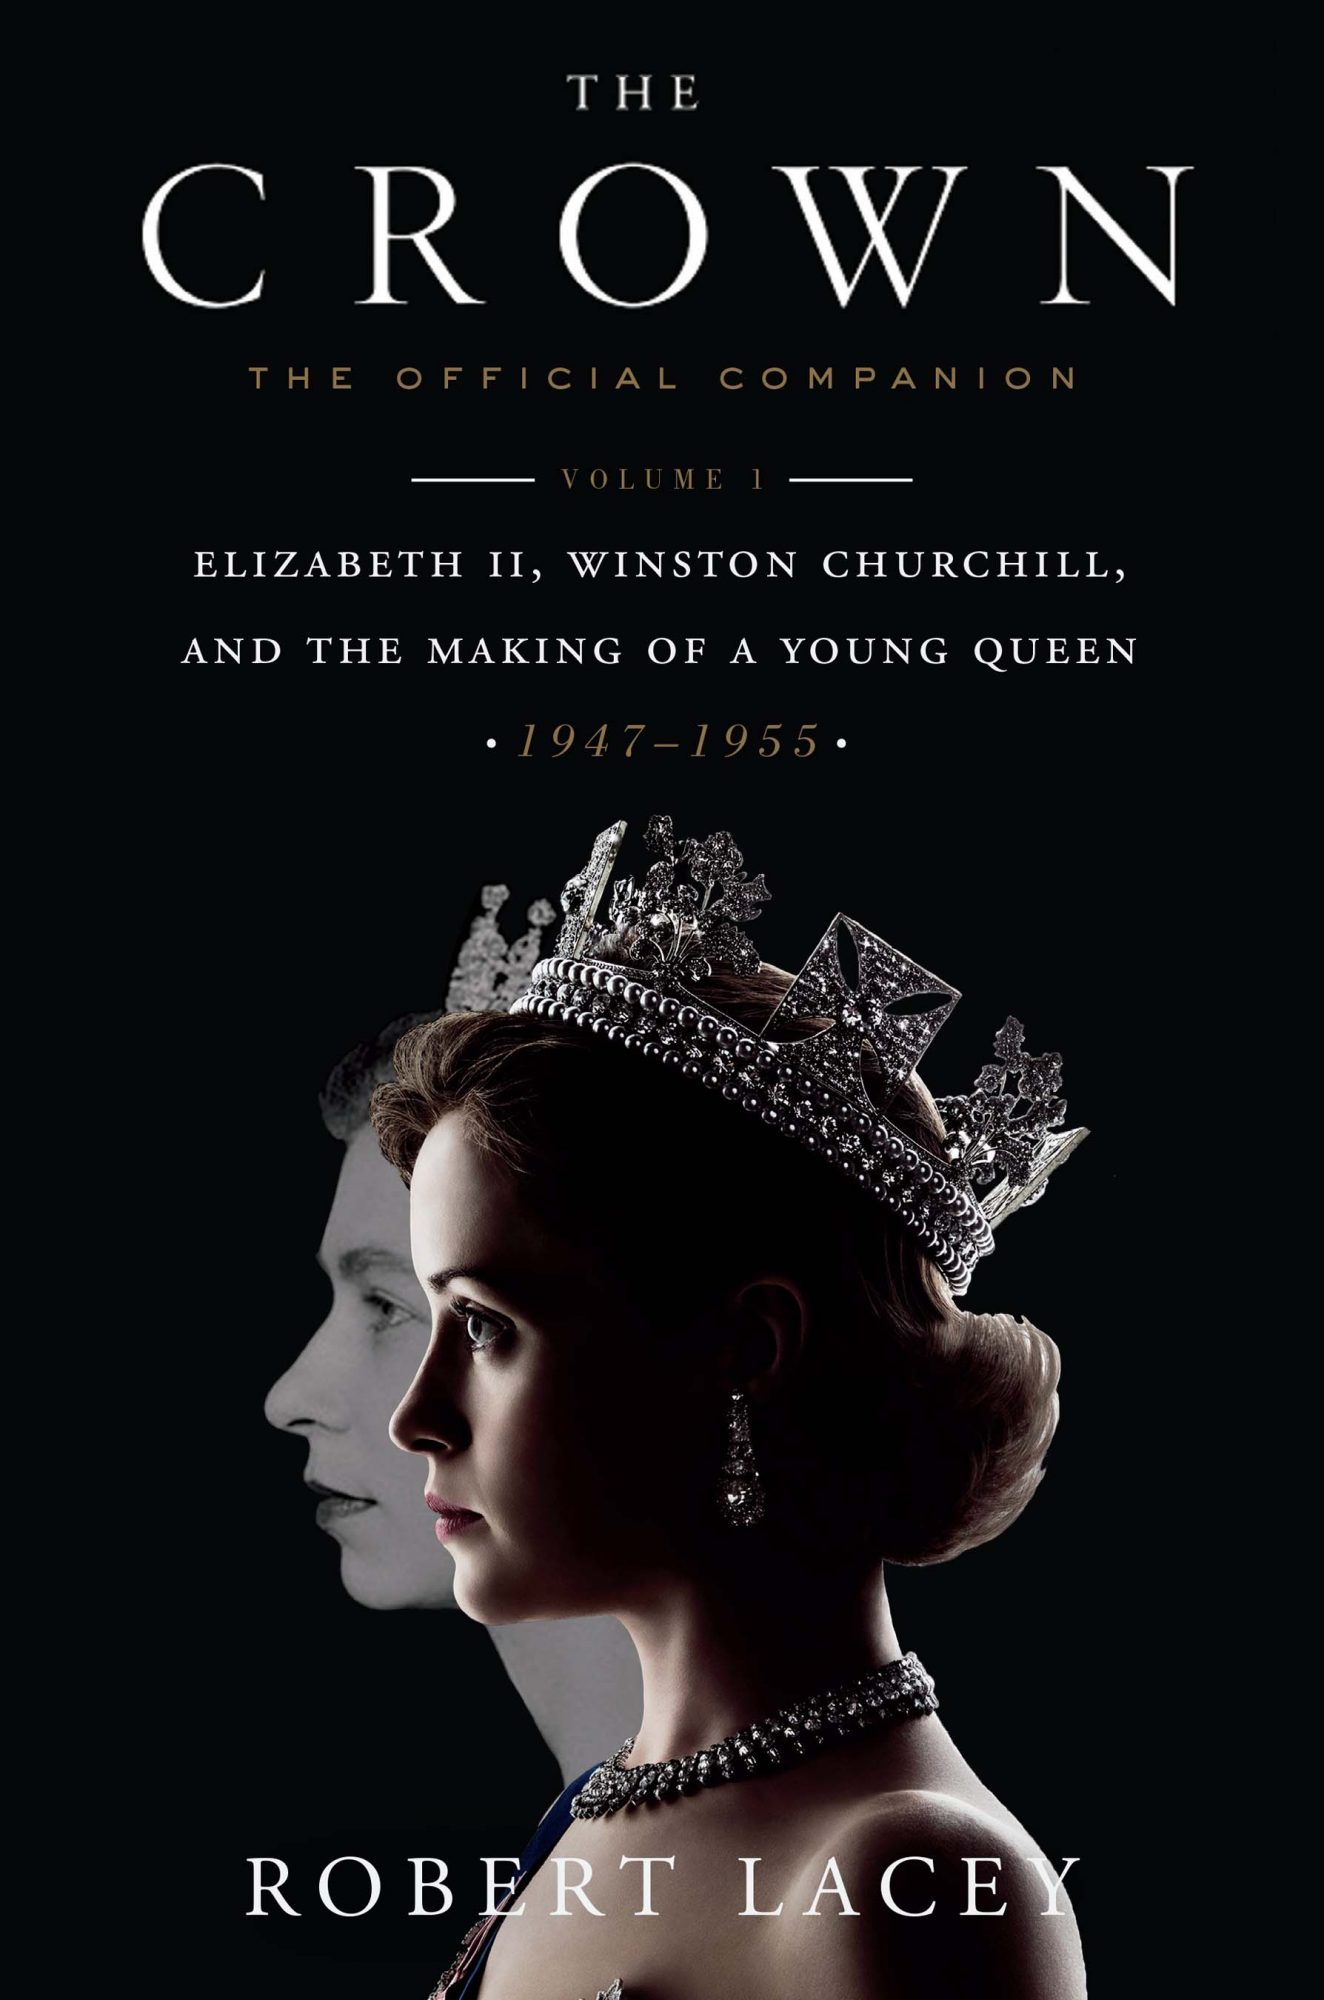 THE-CROWN-Book-Jacket